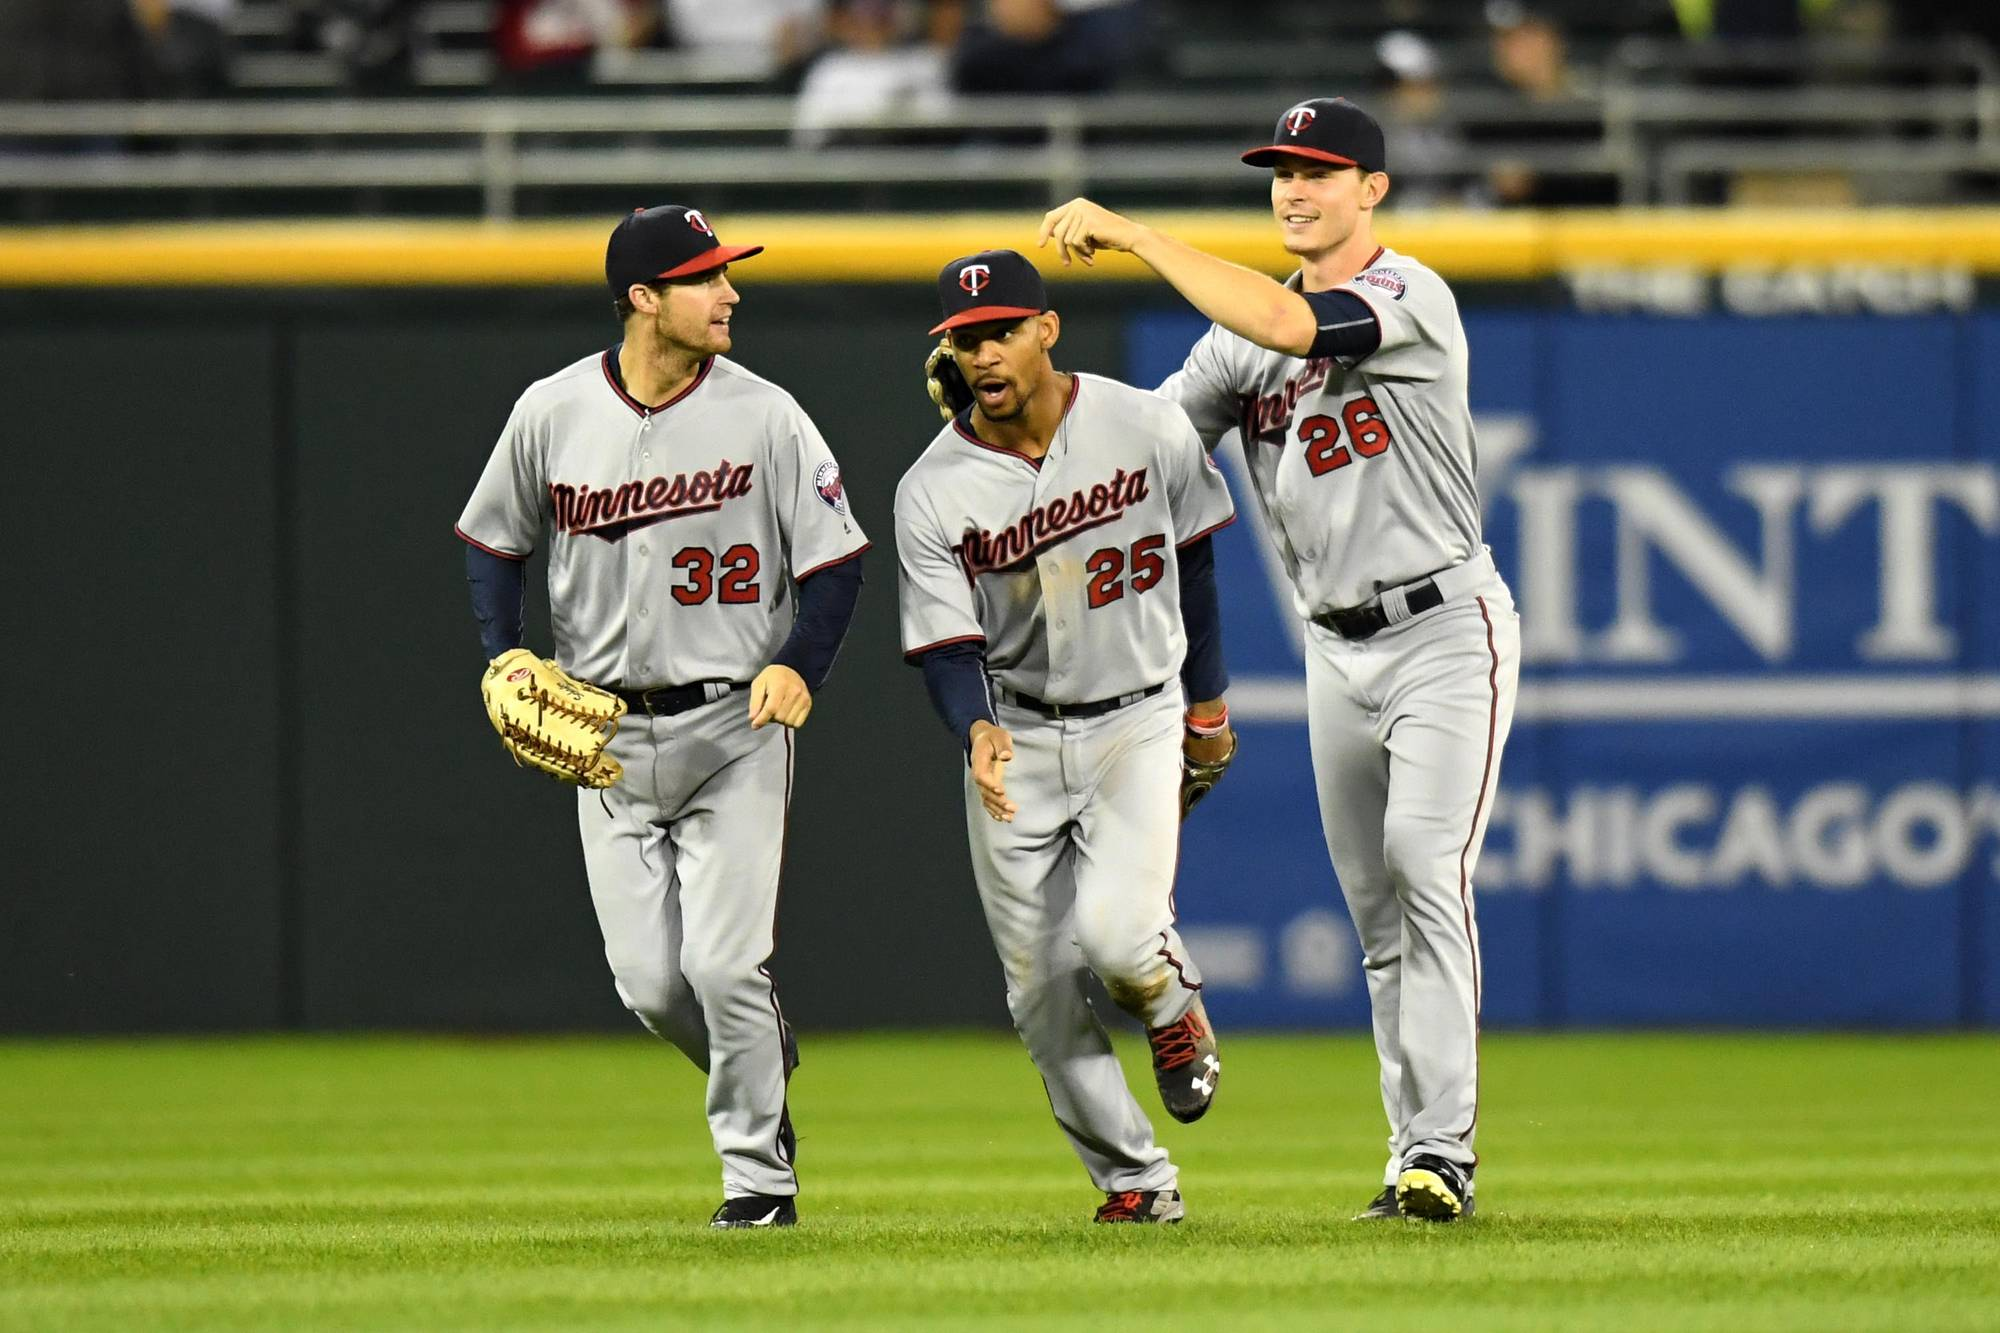 A Really Bad Season, But Still Hope for the Minnesota Twins